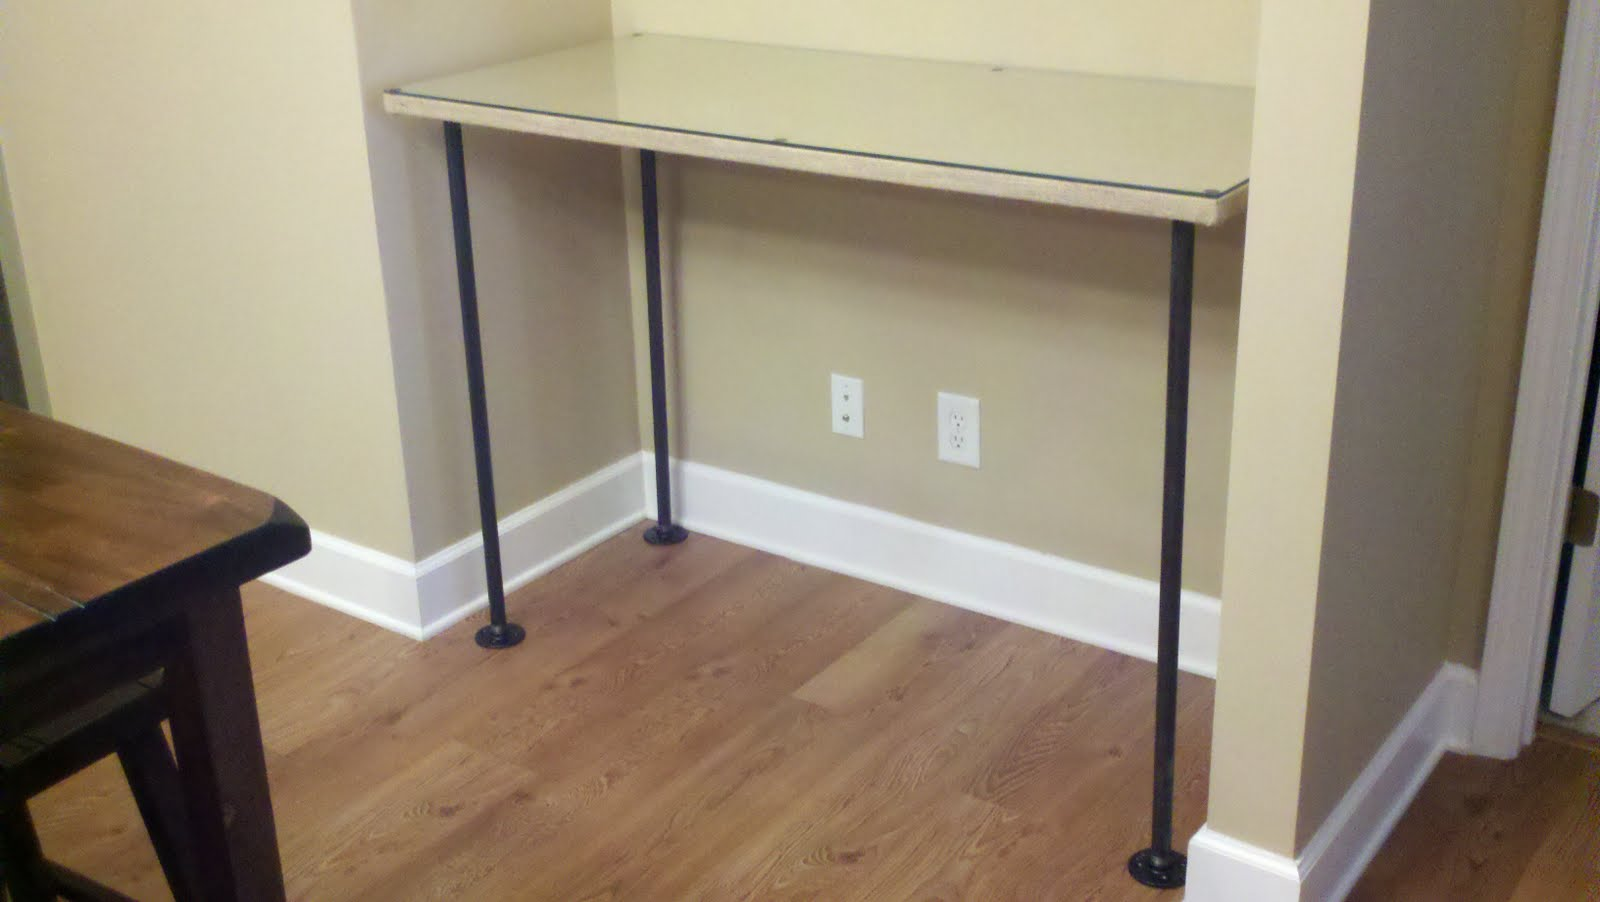 I Needed A New Desk For My Stationary Making And Work Desk. I Used An Old  Table Top I Had From Container Store, Burlap, Flanges And Piping From Home  Depot.